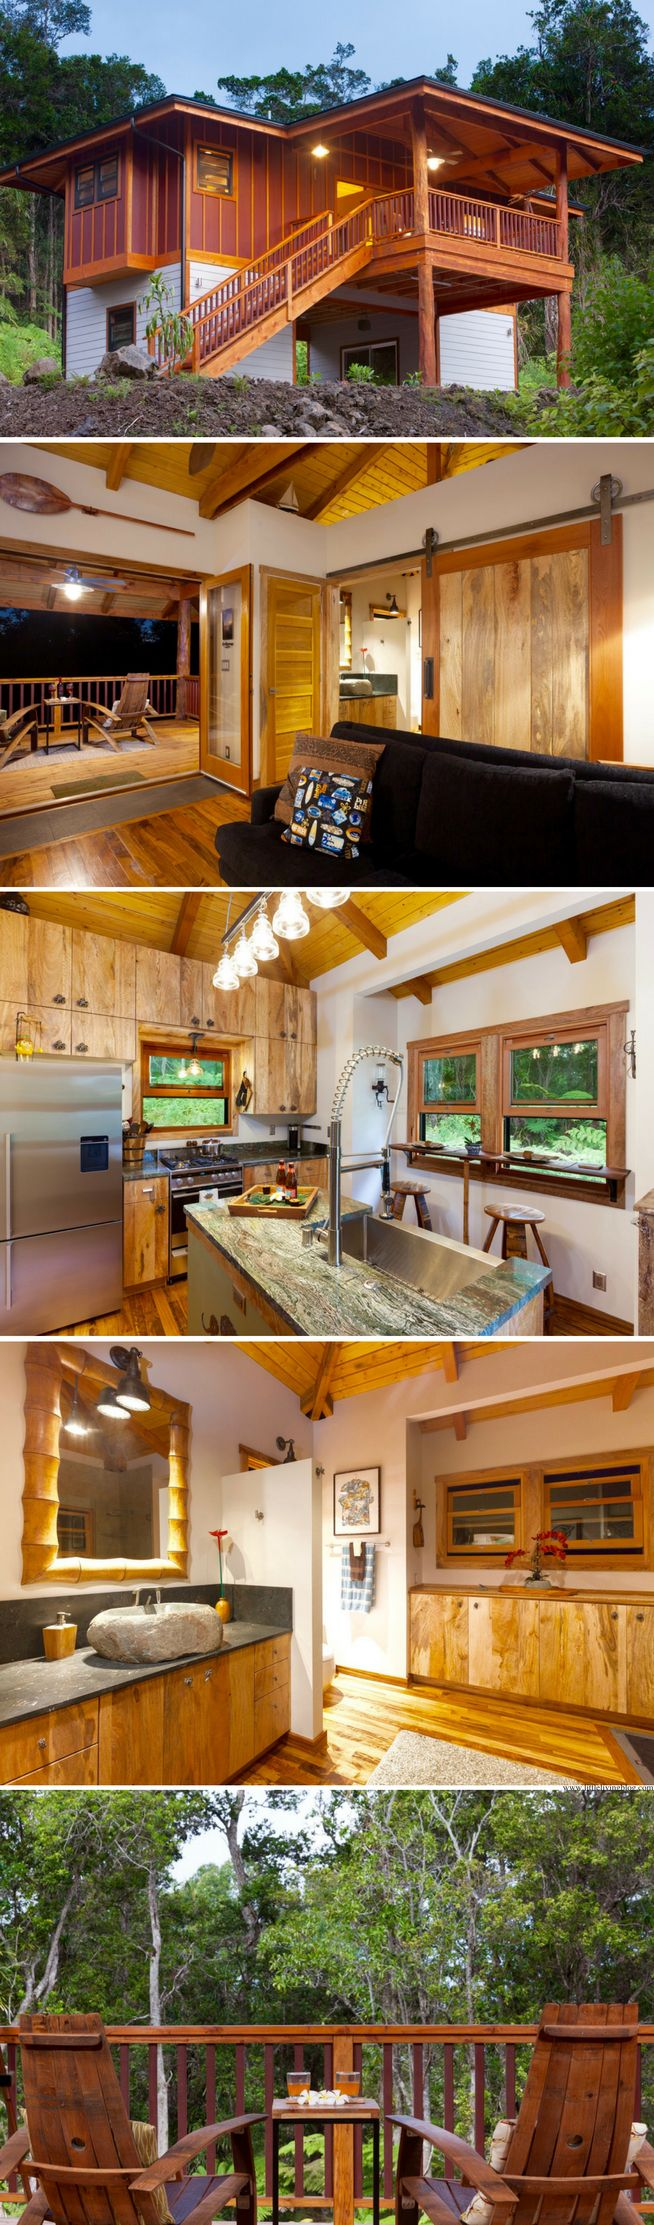 Interior design for 10x12 bedroom  best mini houses cabins u sheds images on pinterest  small